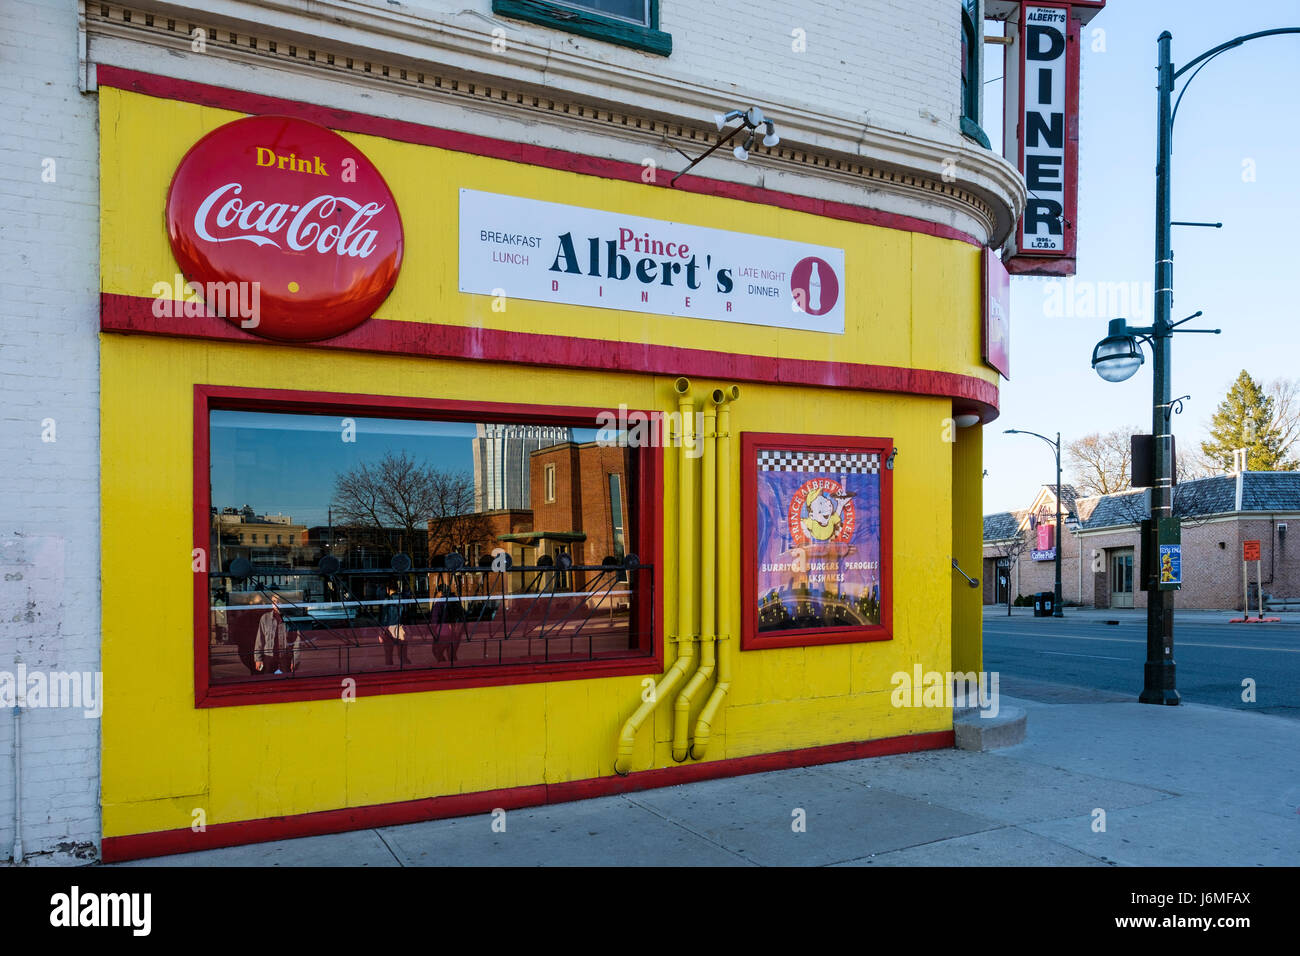 Prince albert 39 s diner a fast food restaurant in downtown for 8 cuisine london ontario